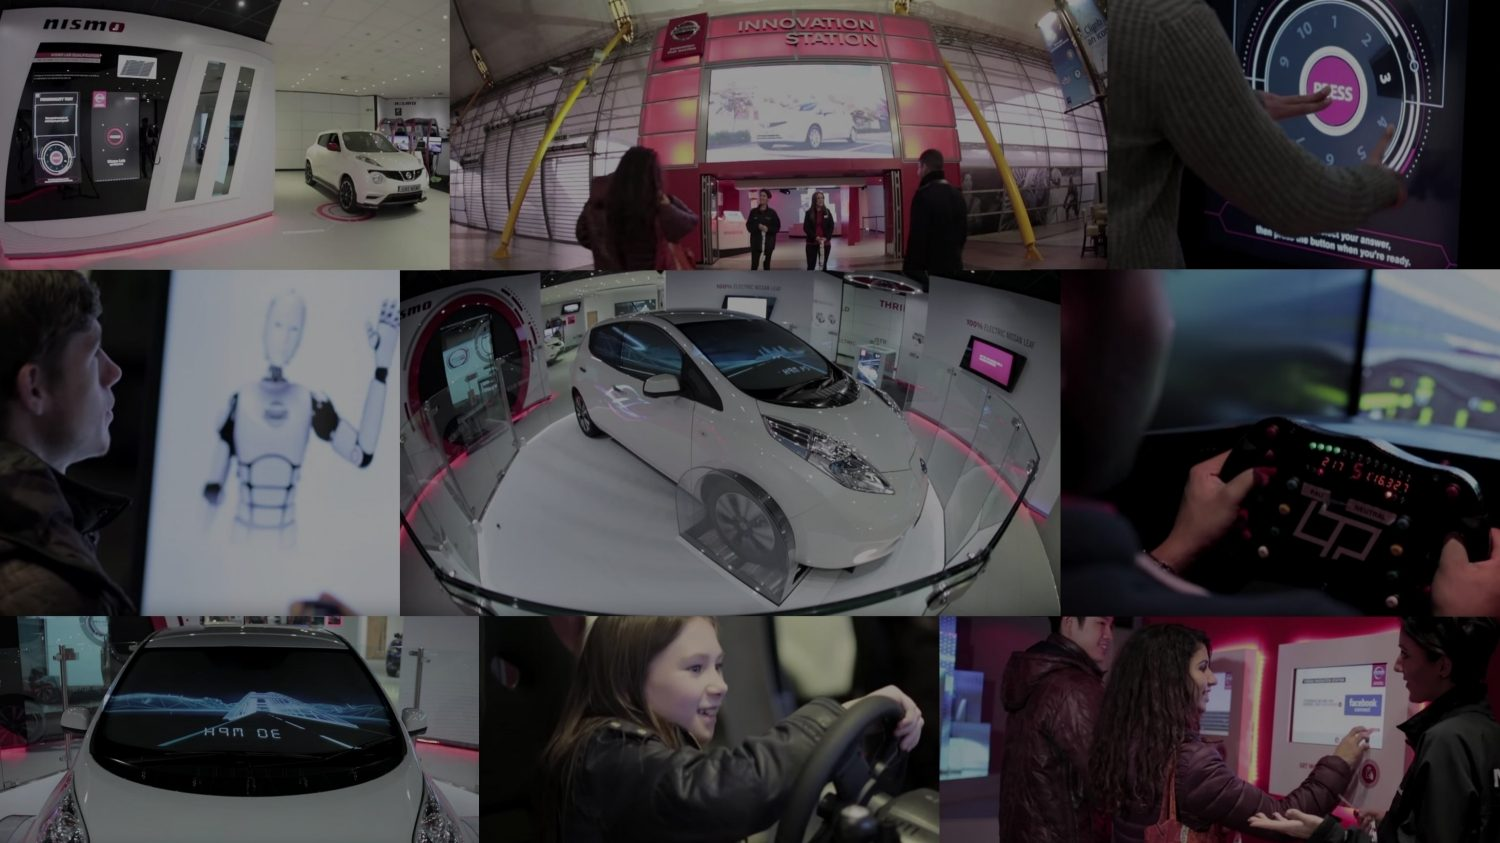 THE NISSAN INNOVATION STATION